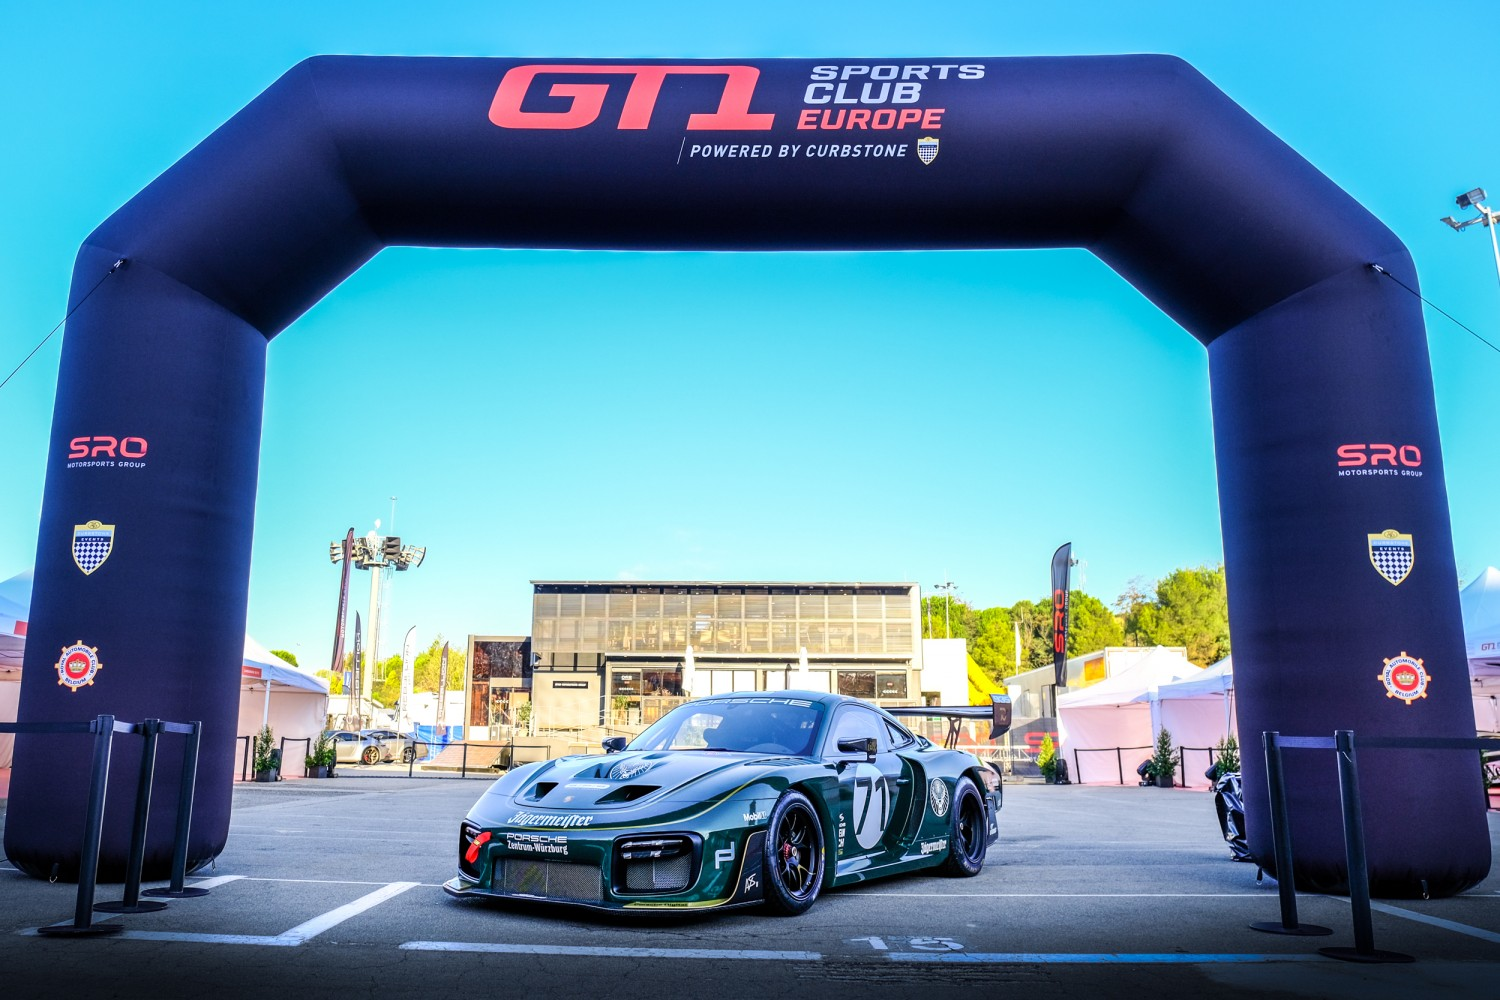 GT1 Sports Club Powered by Curbstone Events set to launch with two-day prologue at Circuit de Barcelona-Catalunya